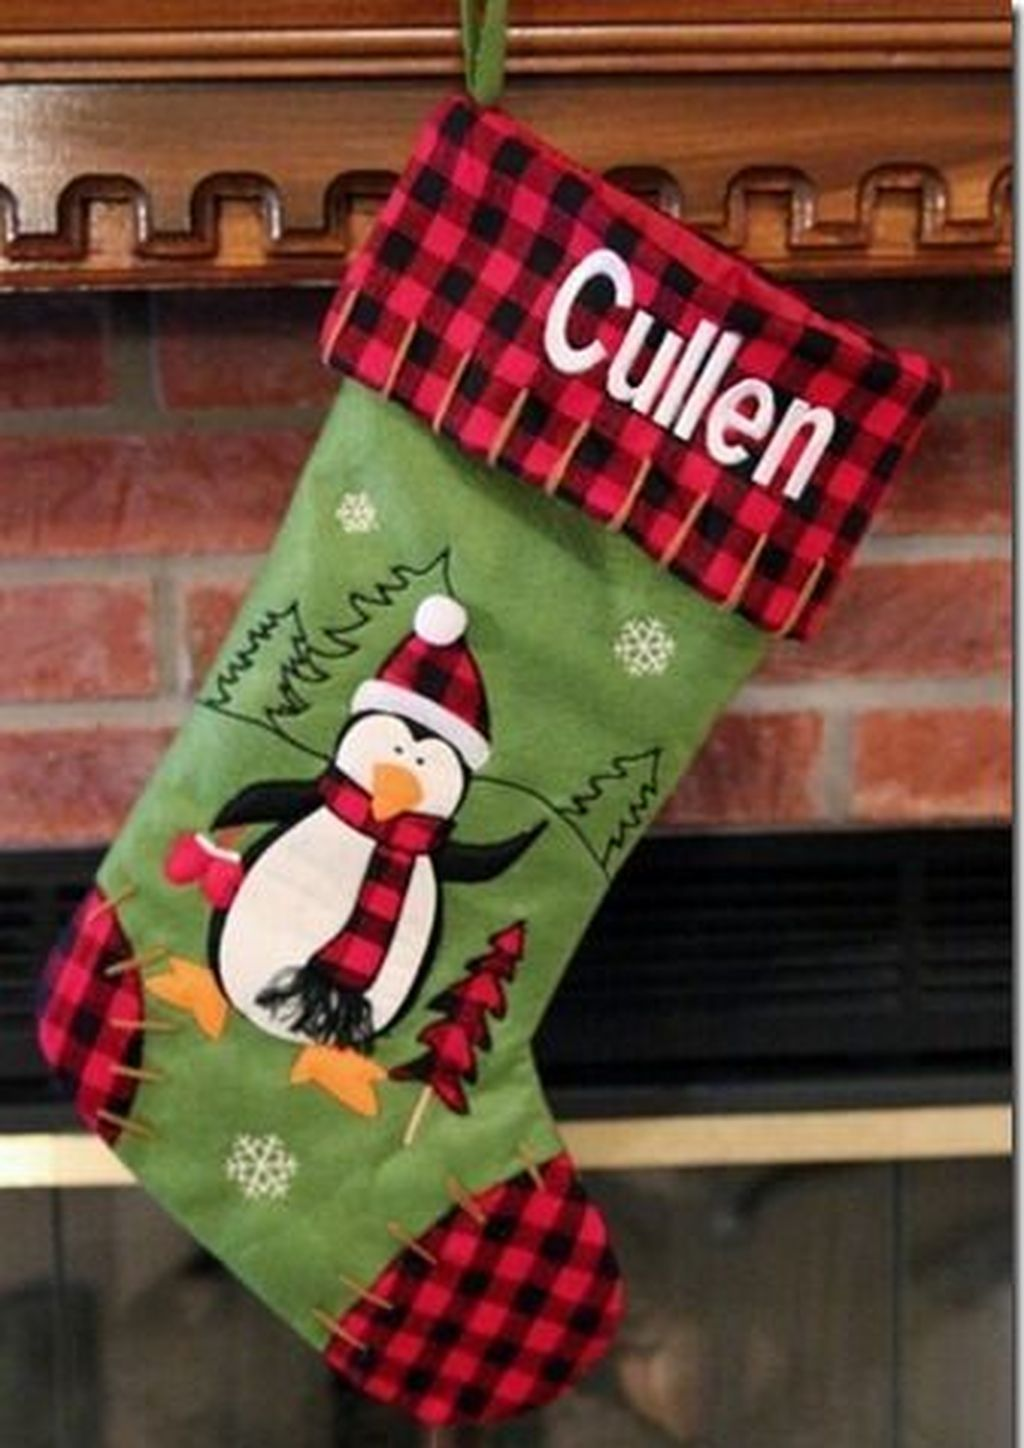 Cool 50 Amazing Christmas Stockings Ideas For Decor Christmas Stockings Quilted Christmas Stockings Stockings Christmas Homemade